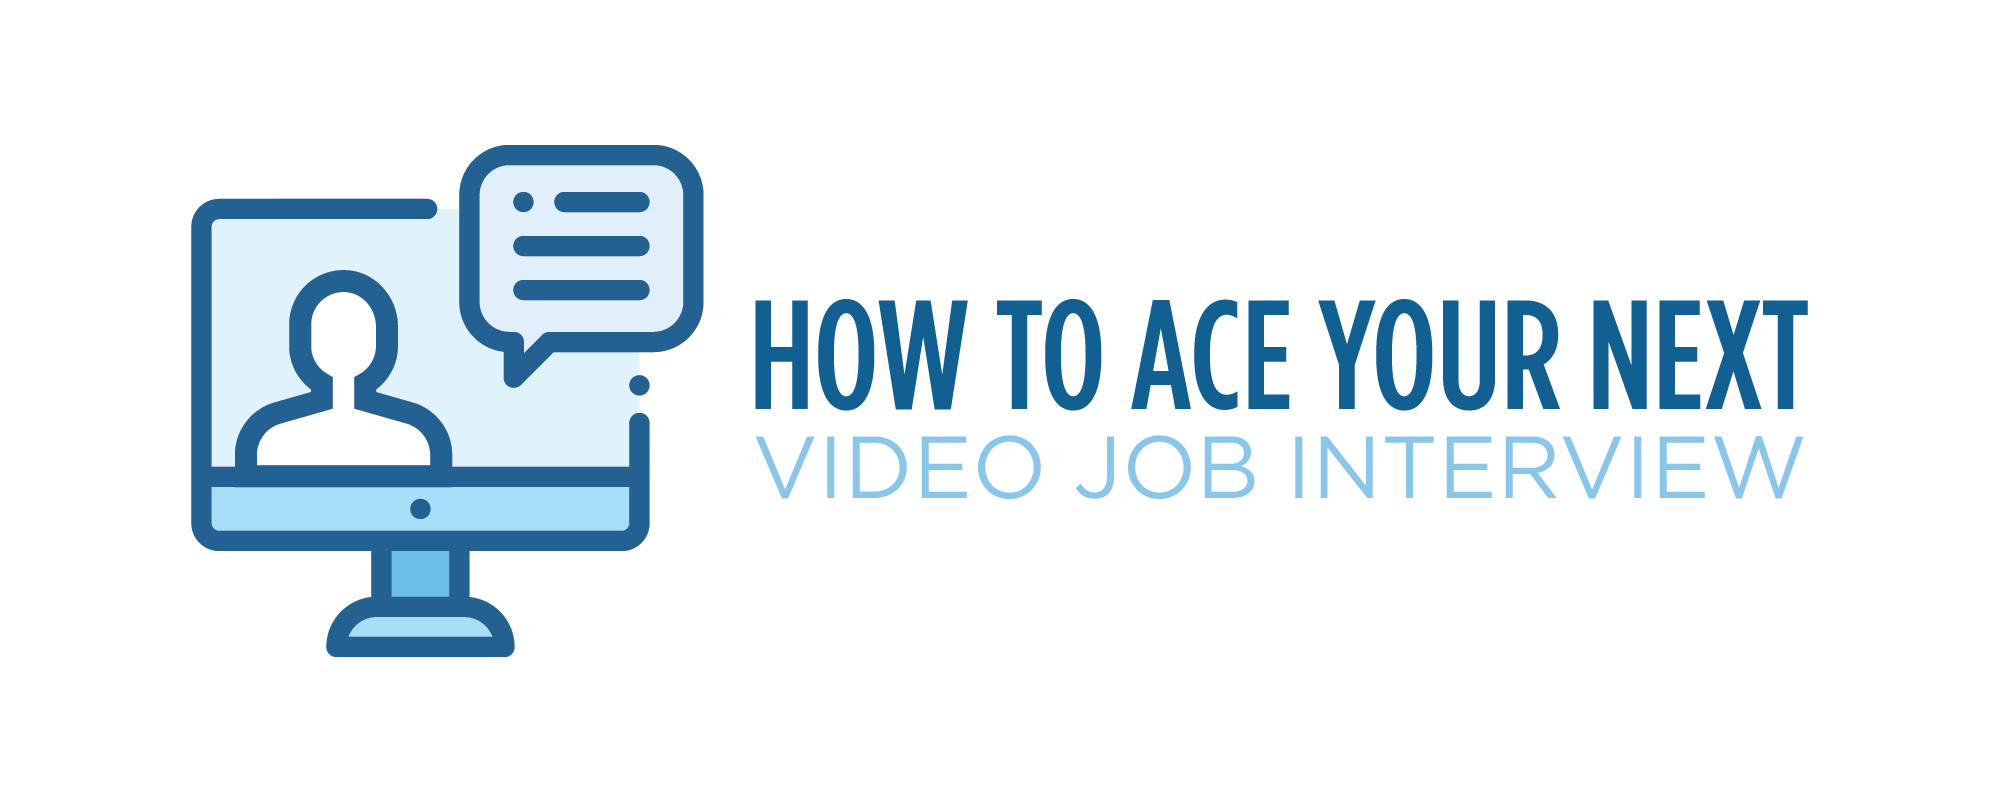 how to ace your next video job interview